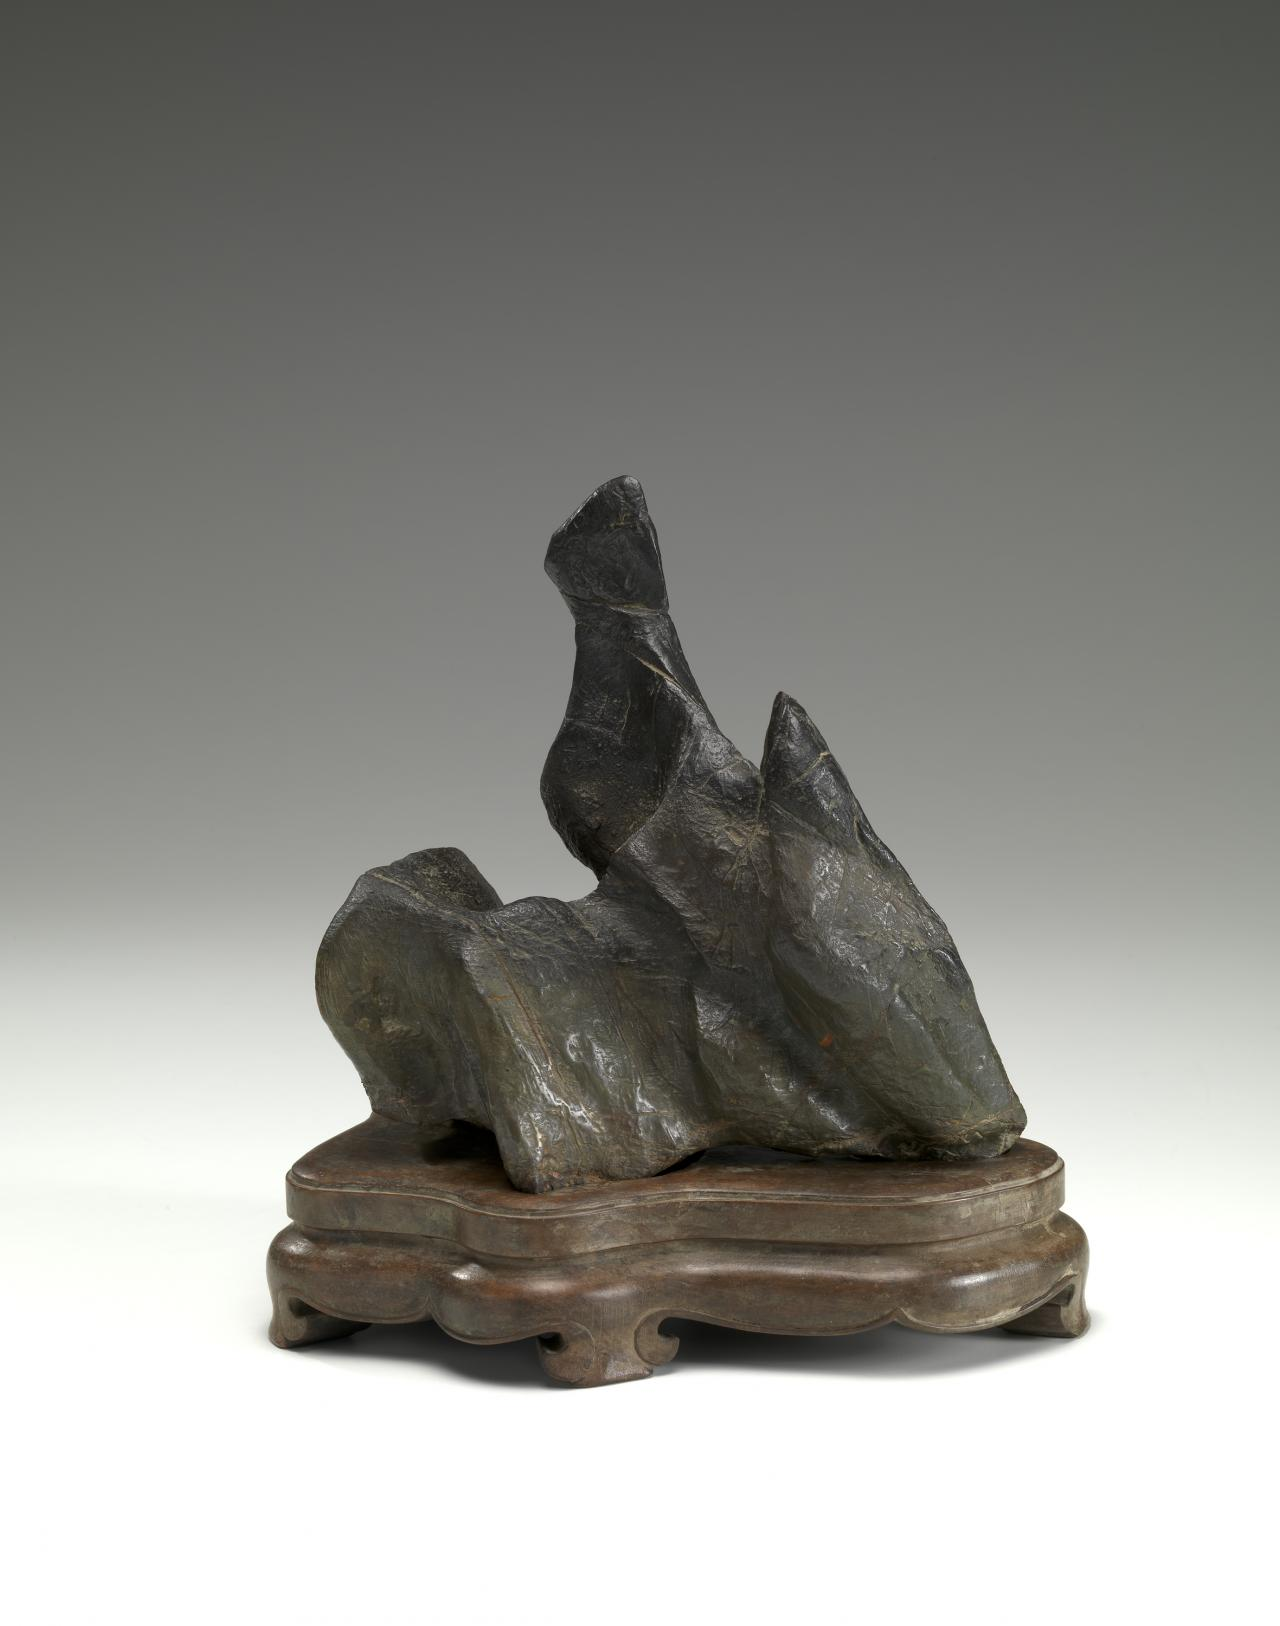 CHINESE Scholar's rock used as a brush stand (early 19th century)